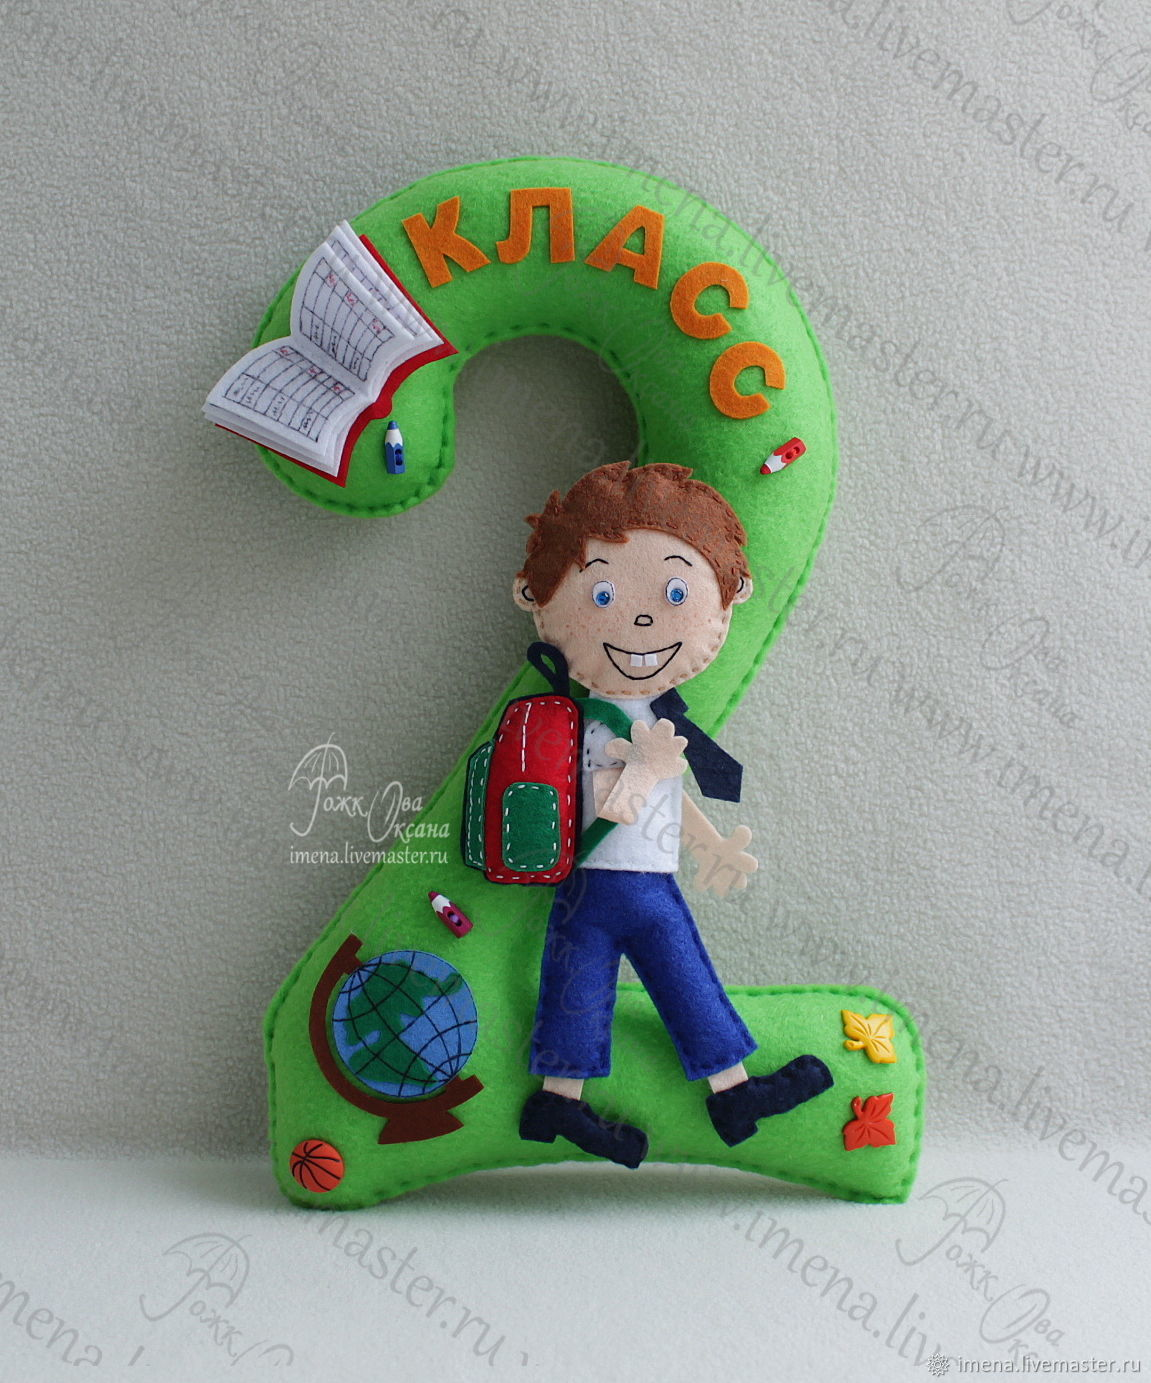 The pattern of the student for the decoration of figures on 1 September. The rest of the pattern on a school theme here https://www.livemaster.ru/item/14986085-materialy-dlya-tvorchestva-komplekt-vykr